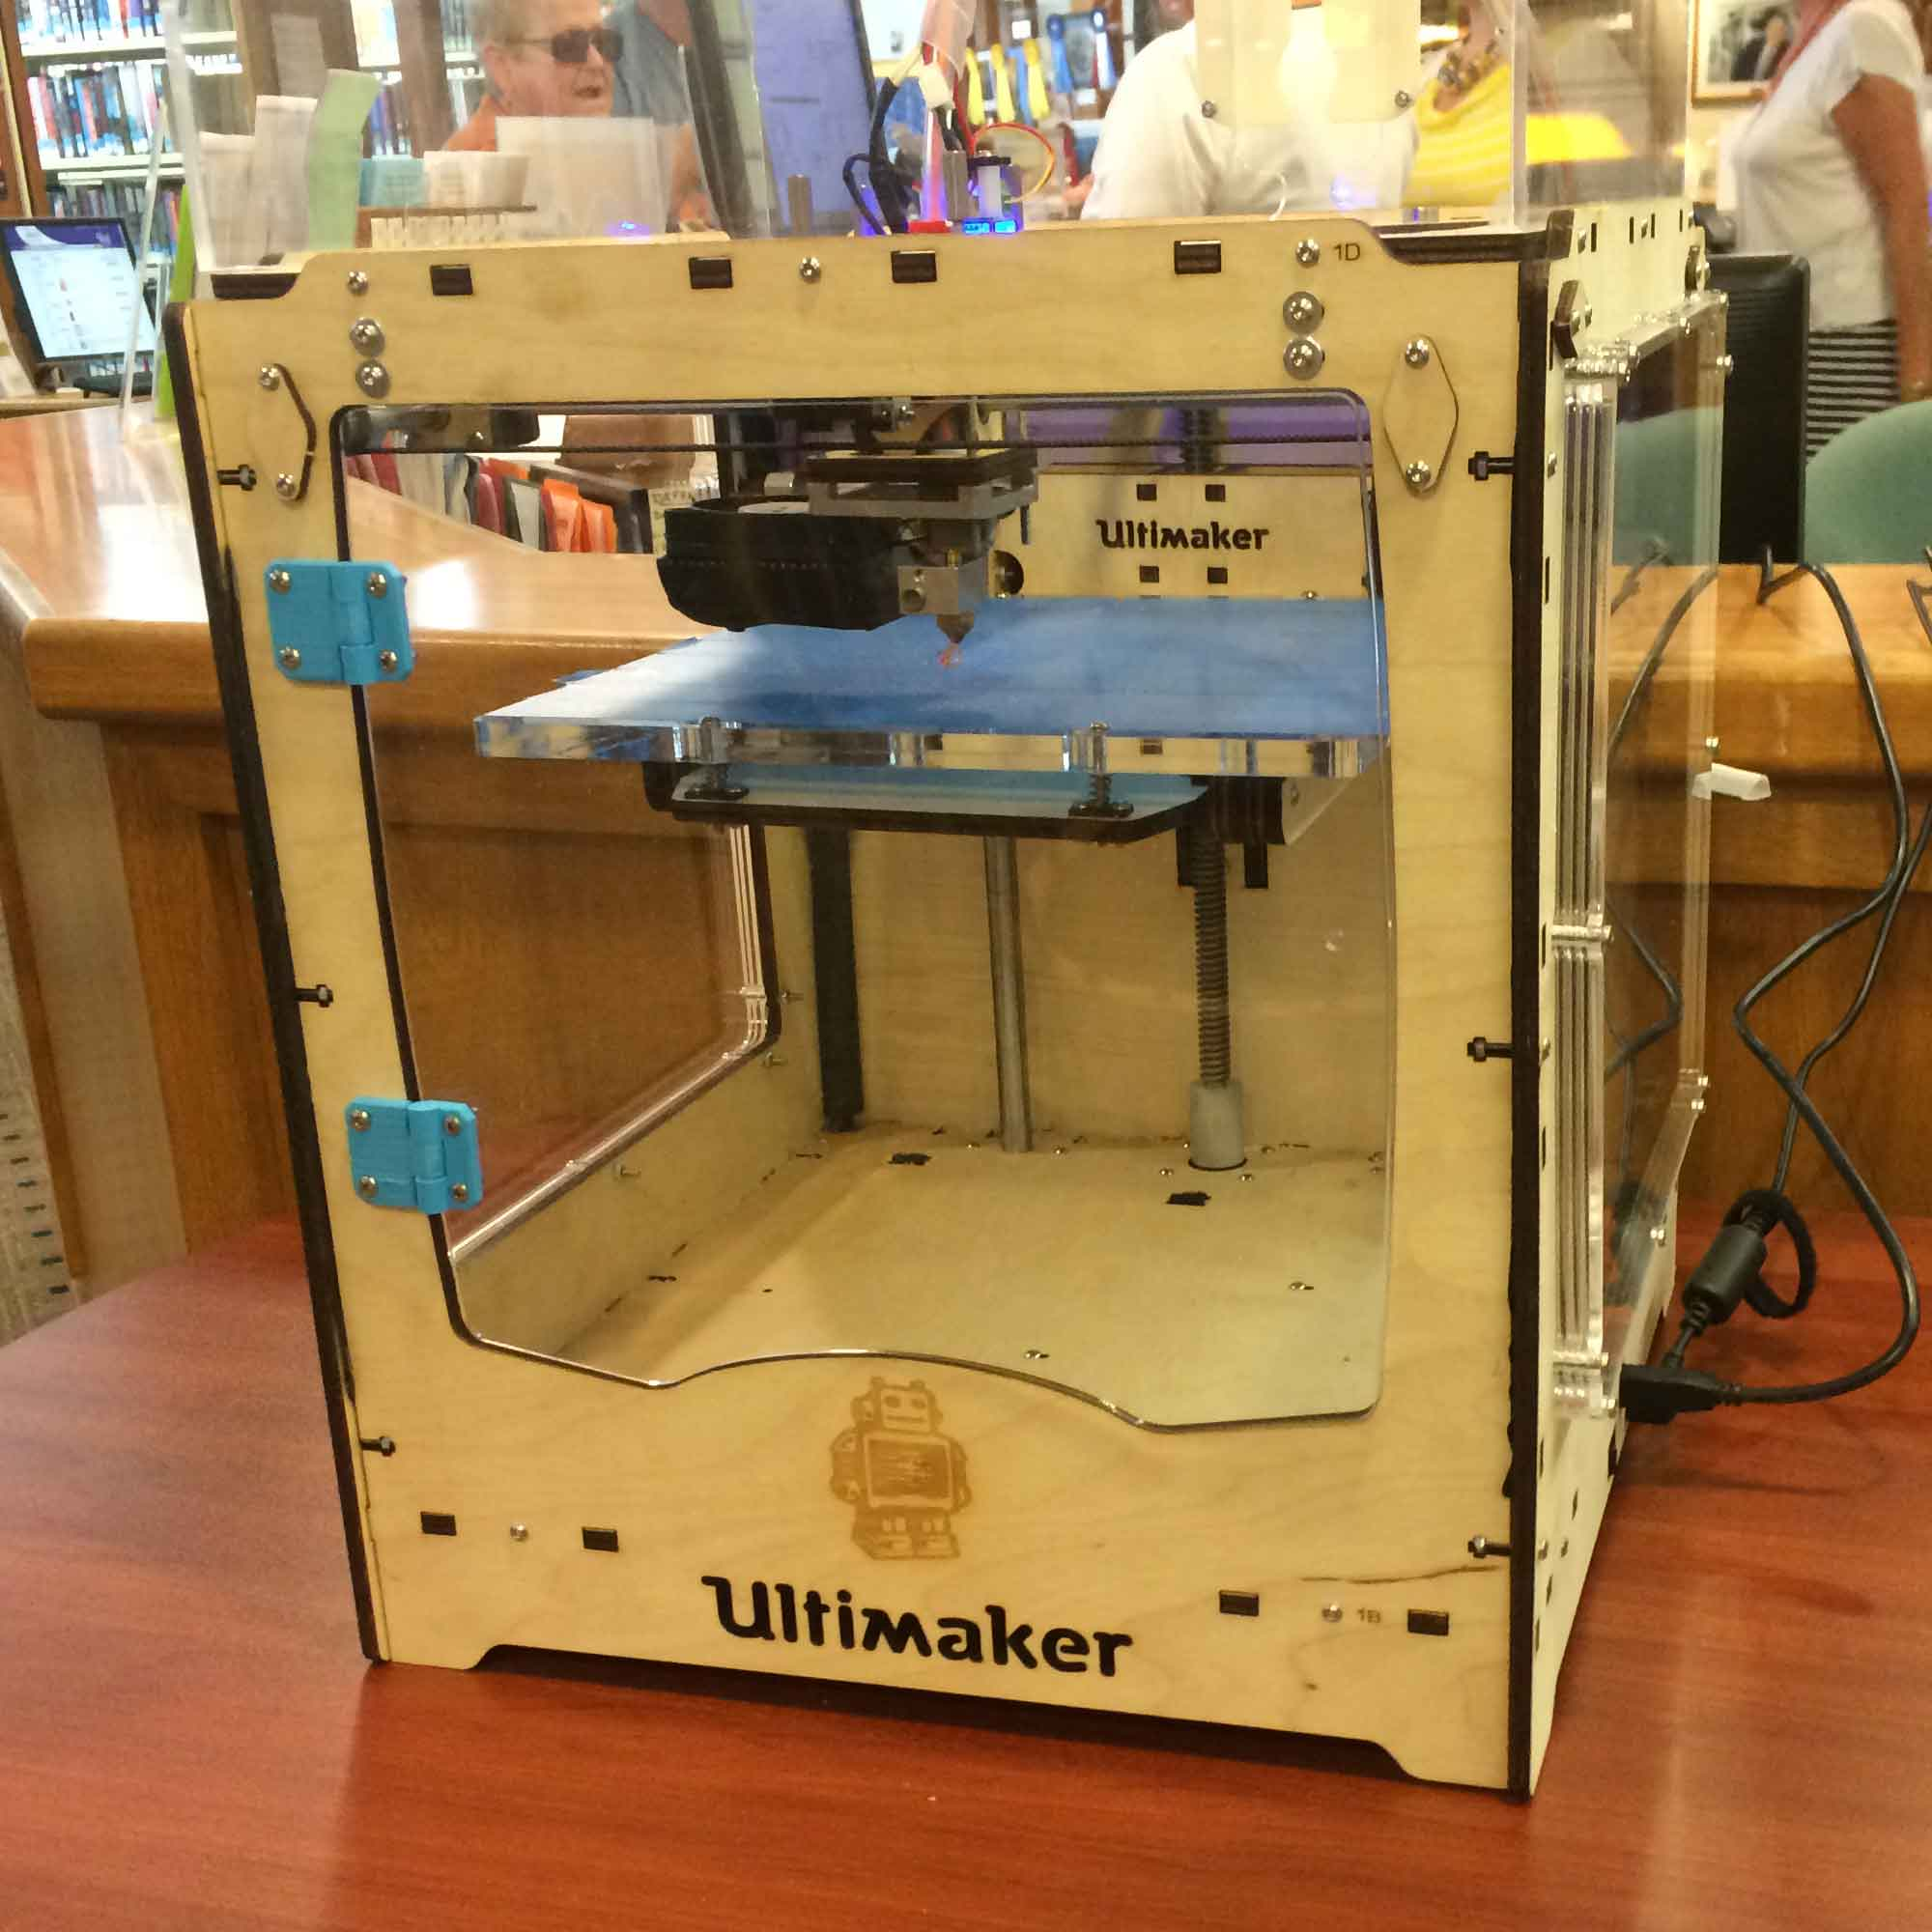 3D Printer Review: A Librarian's Perspective